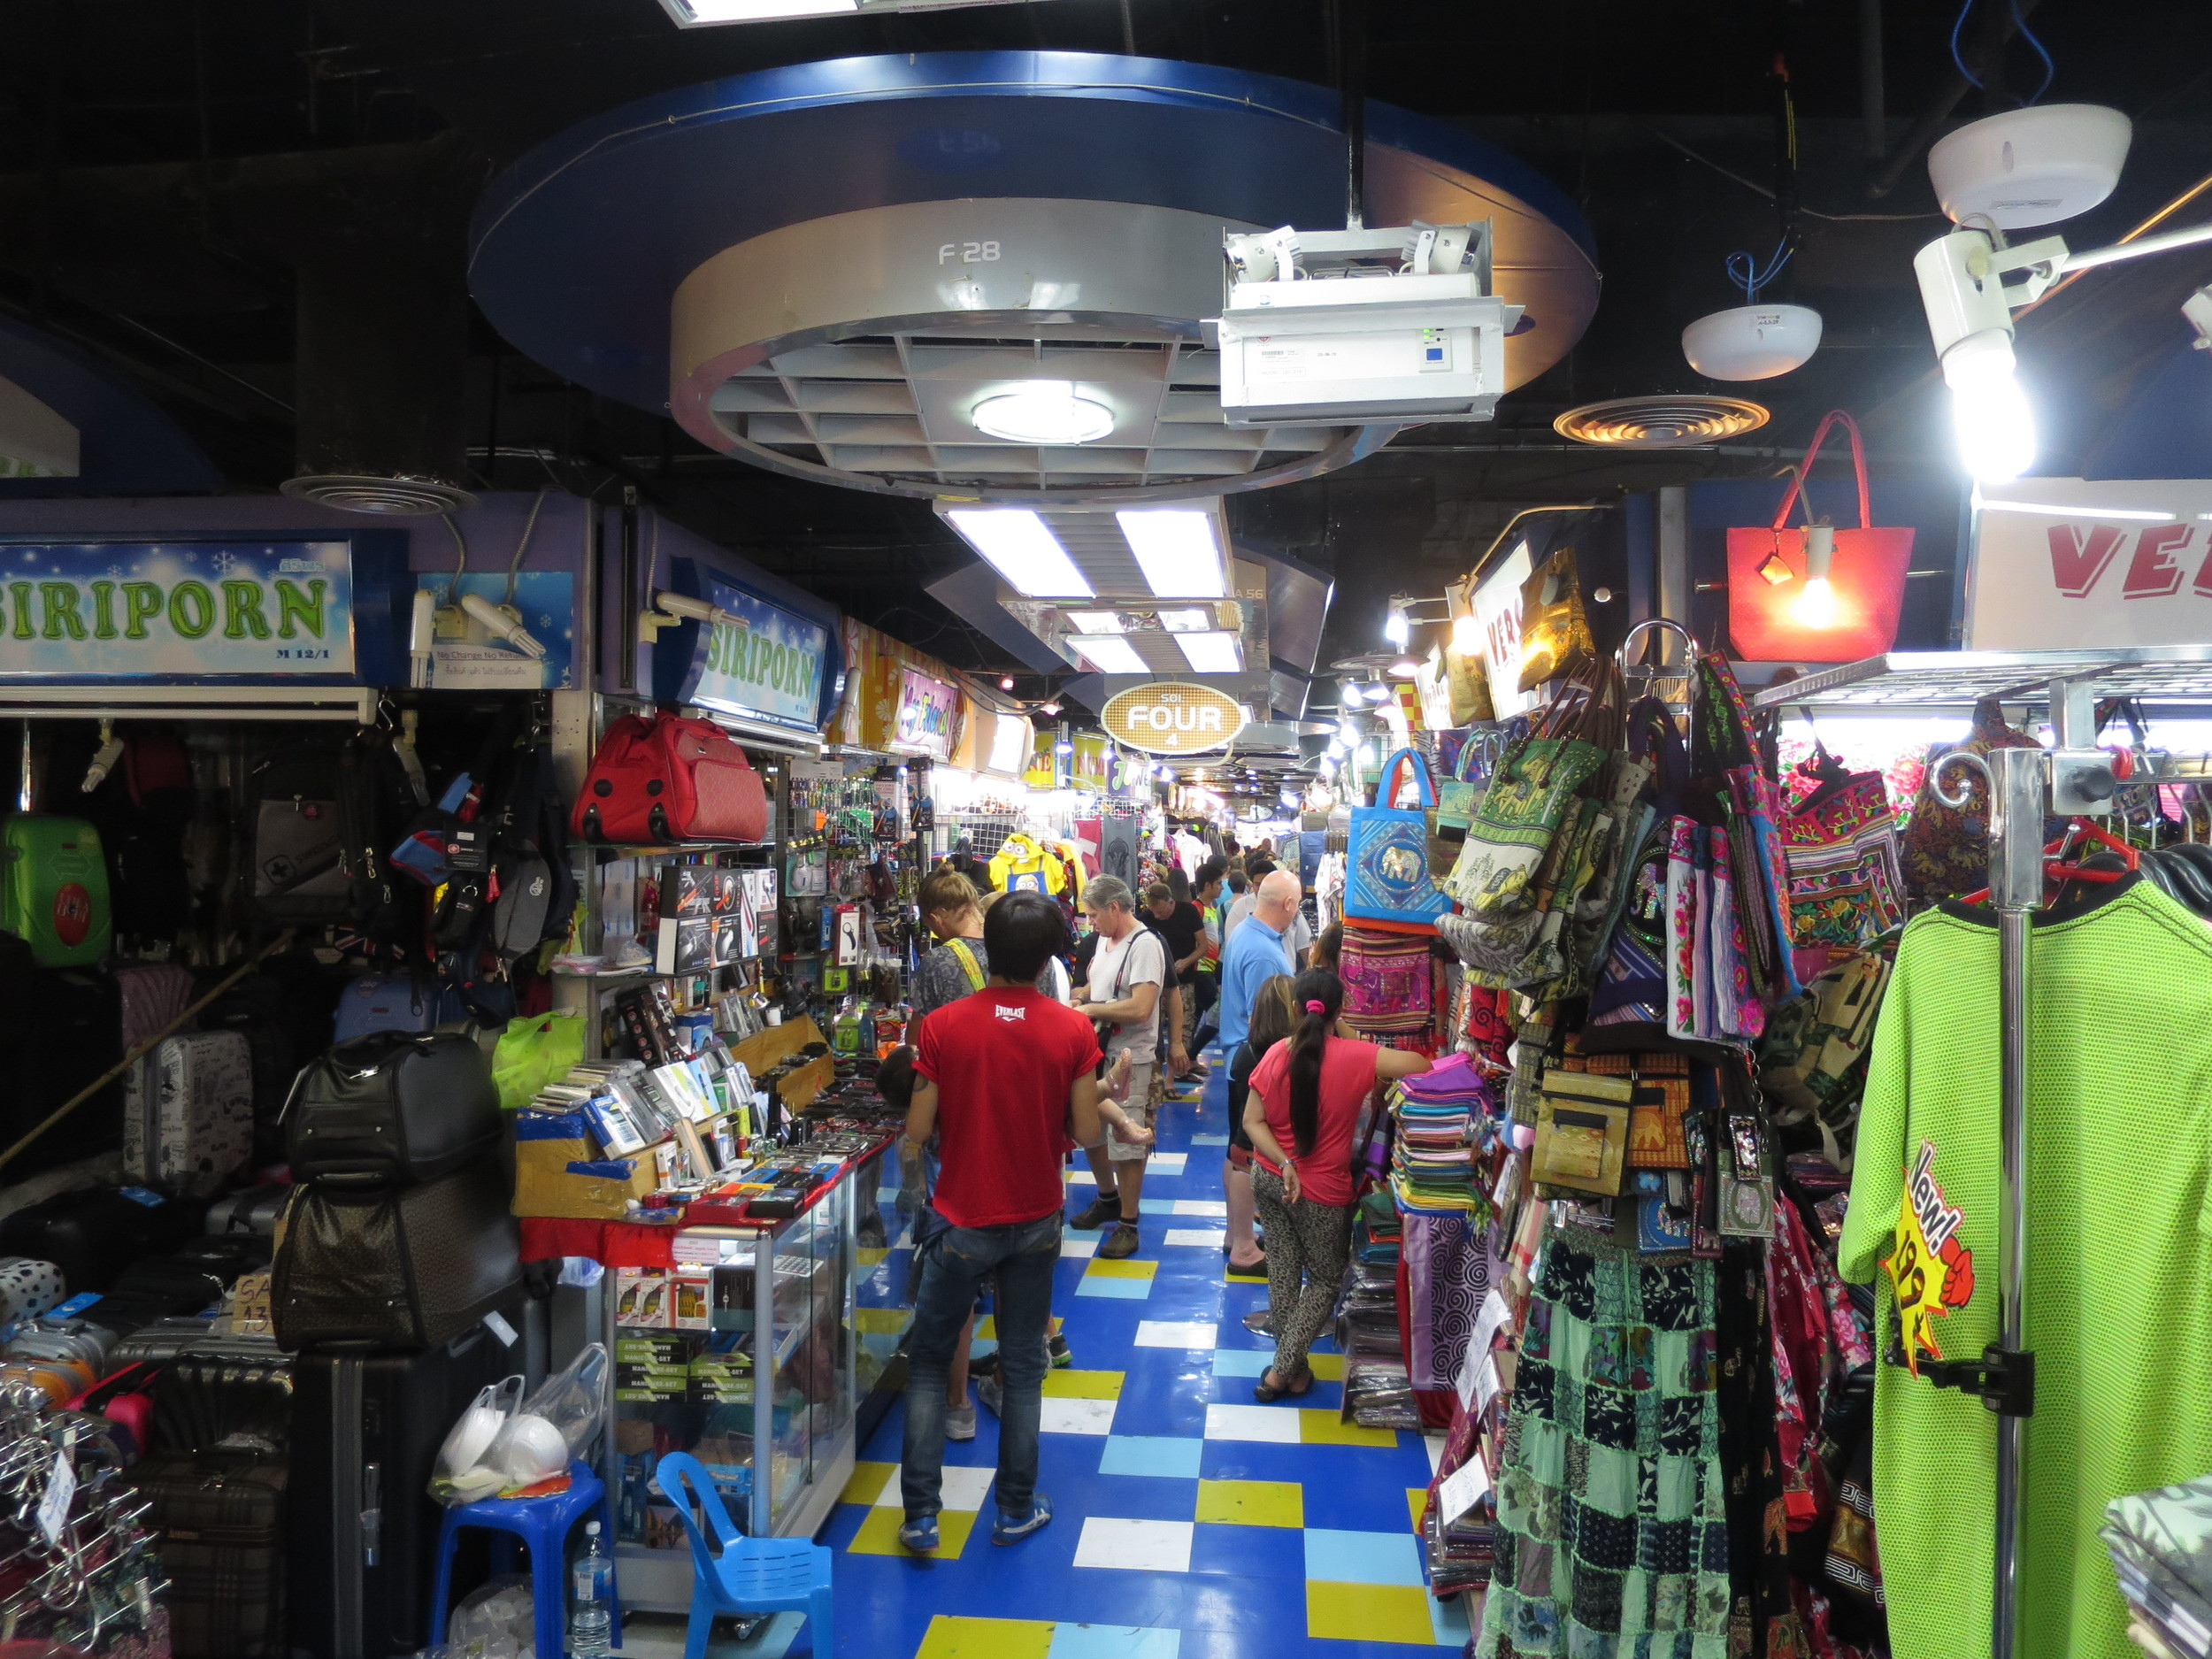 The clothing floor inside MBK